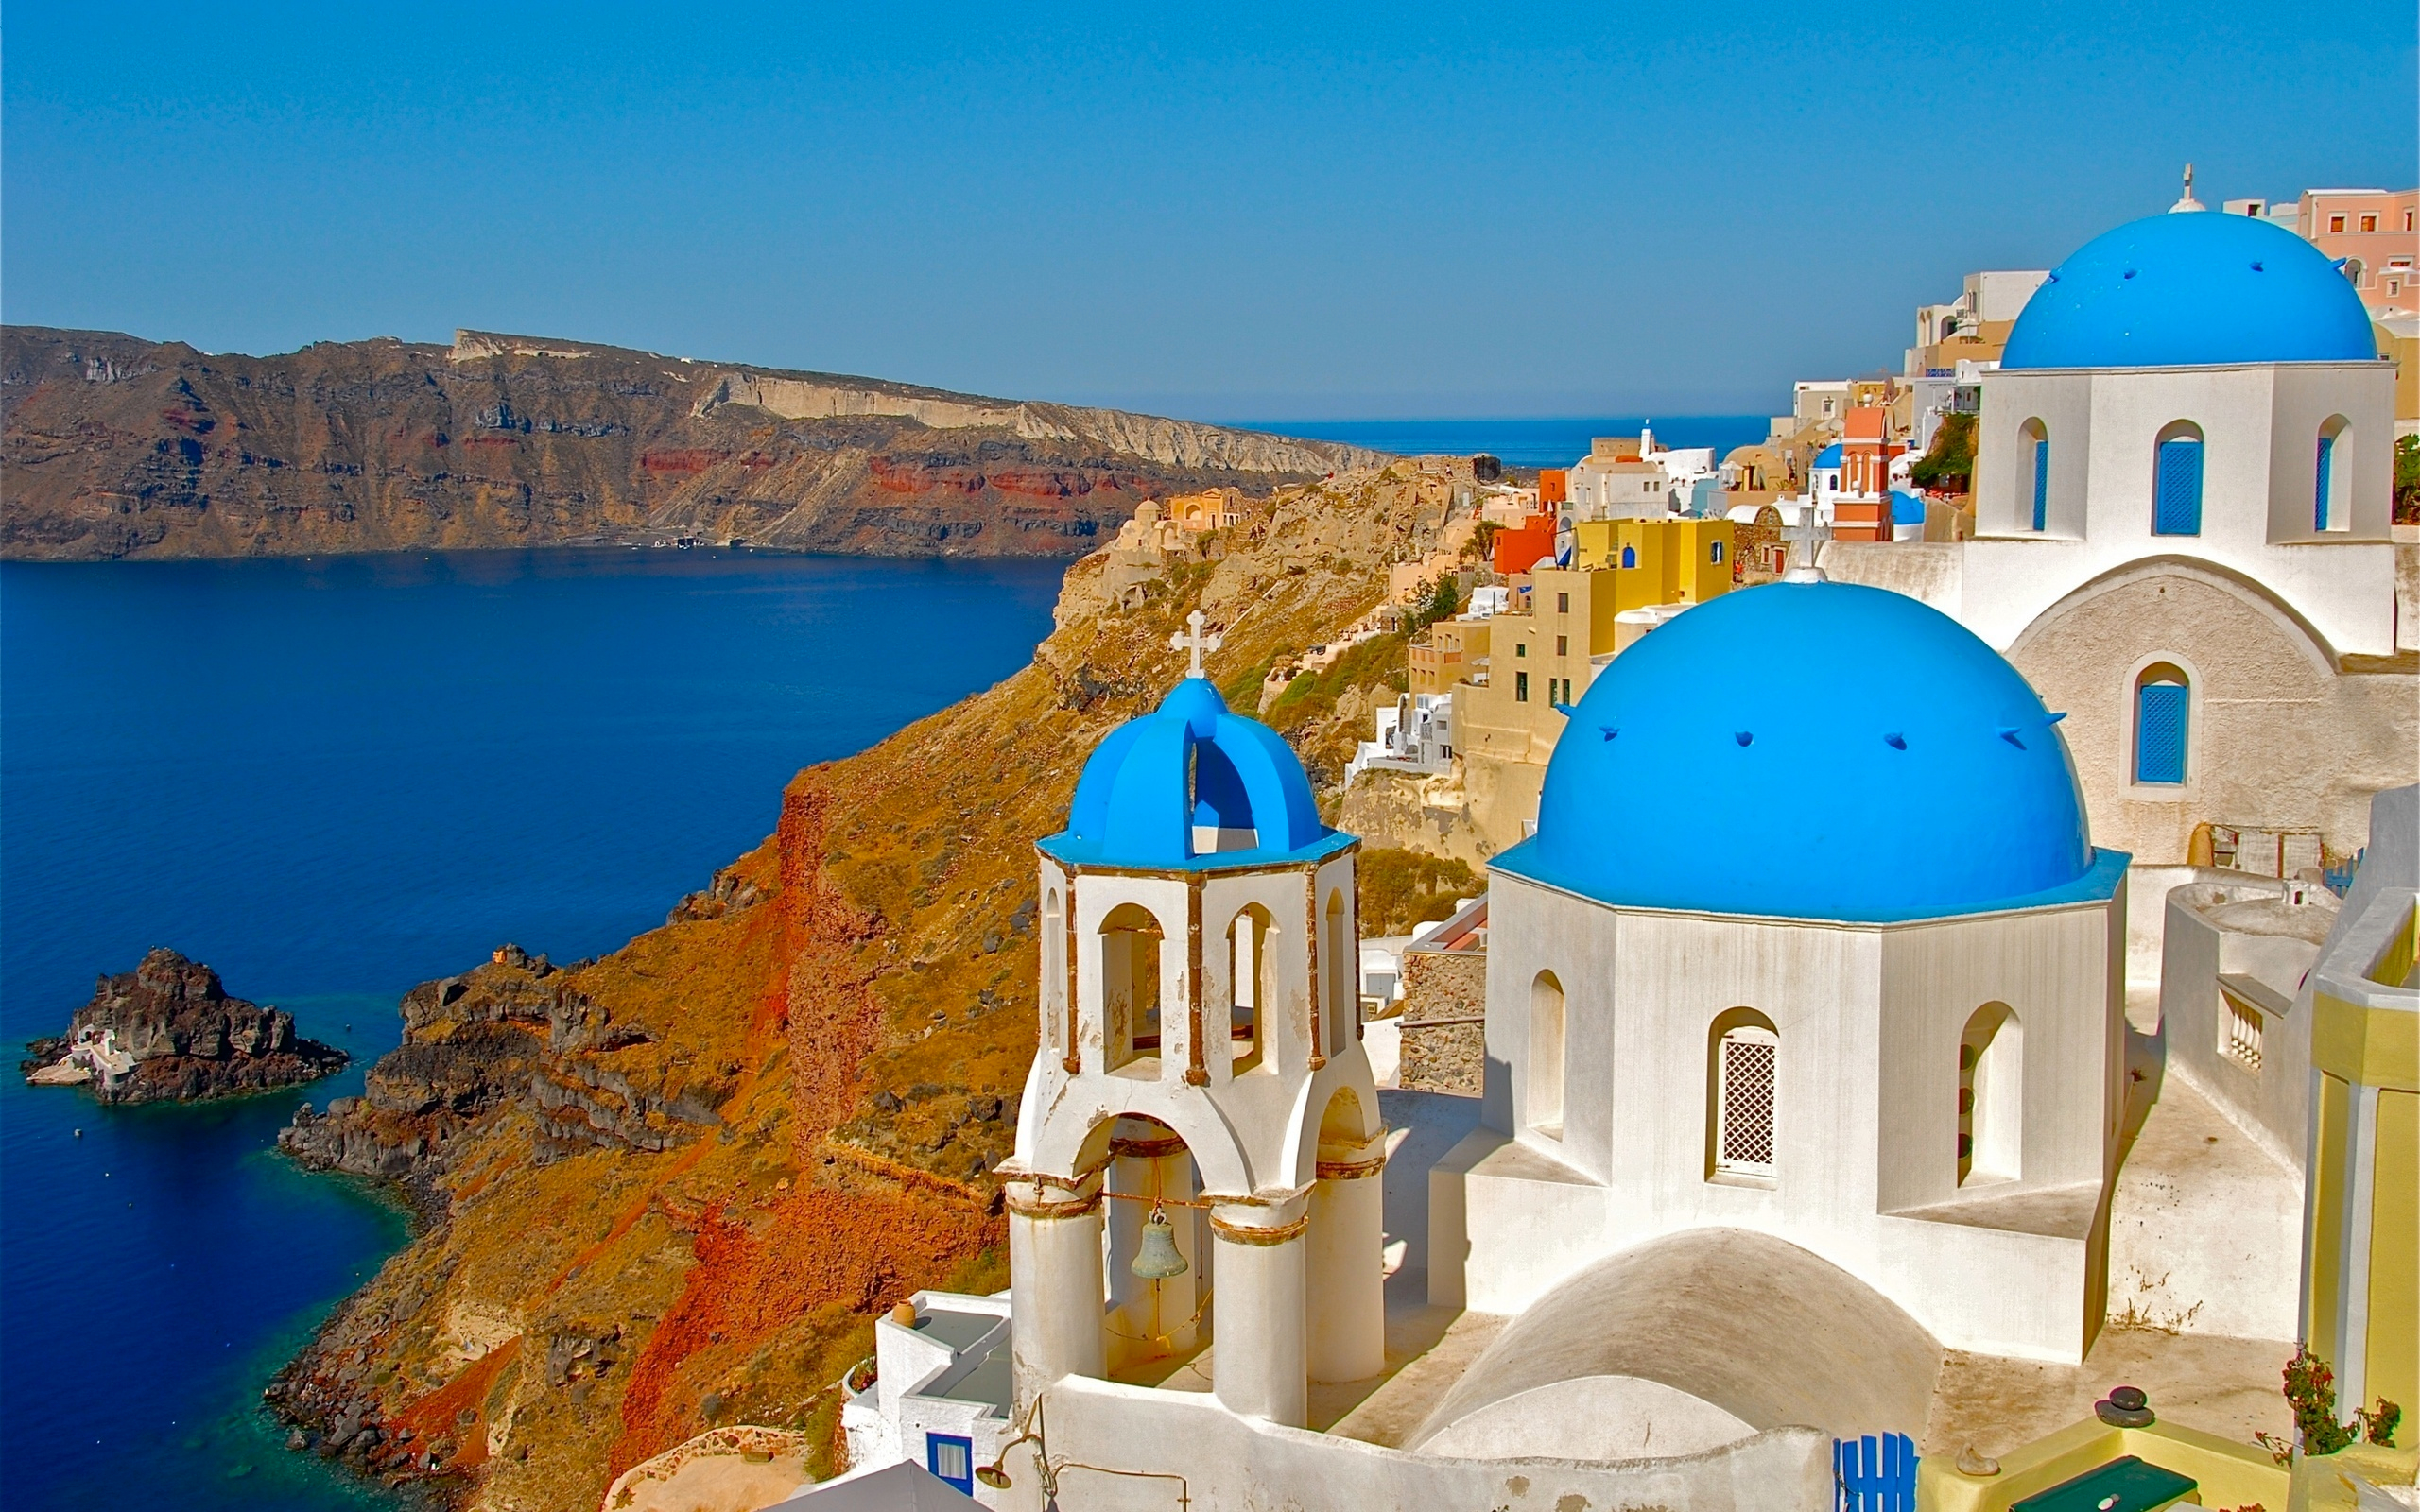 Hd Wallpaper Of World Santorini Wallpapers Pictures Images